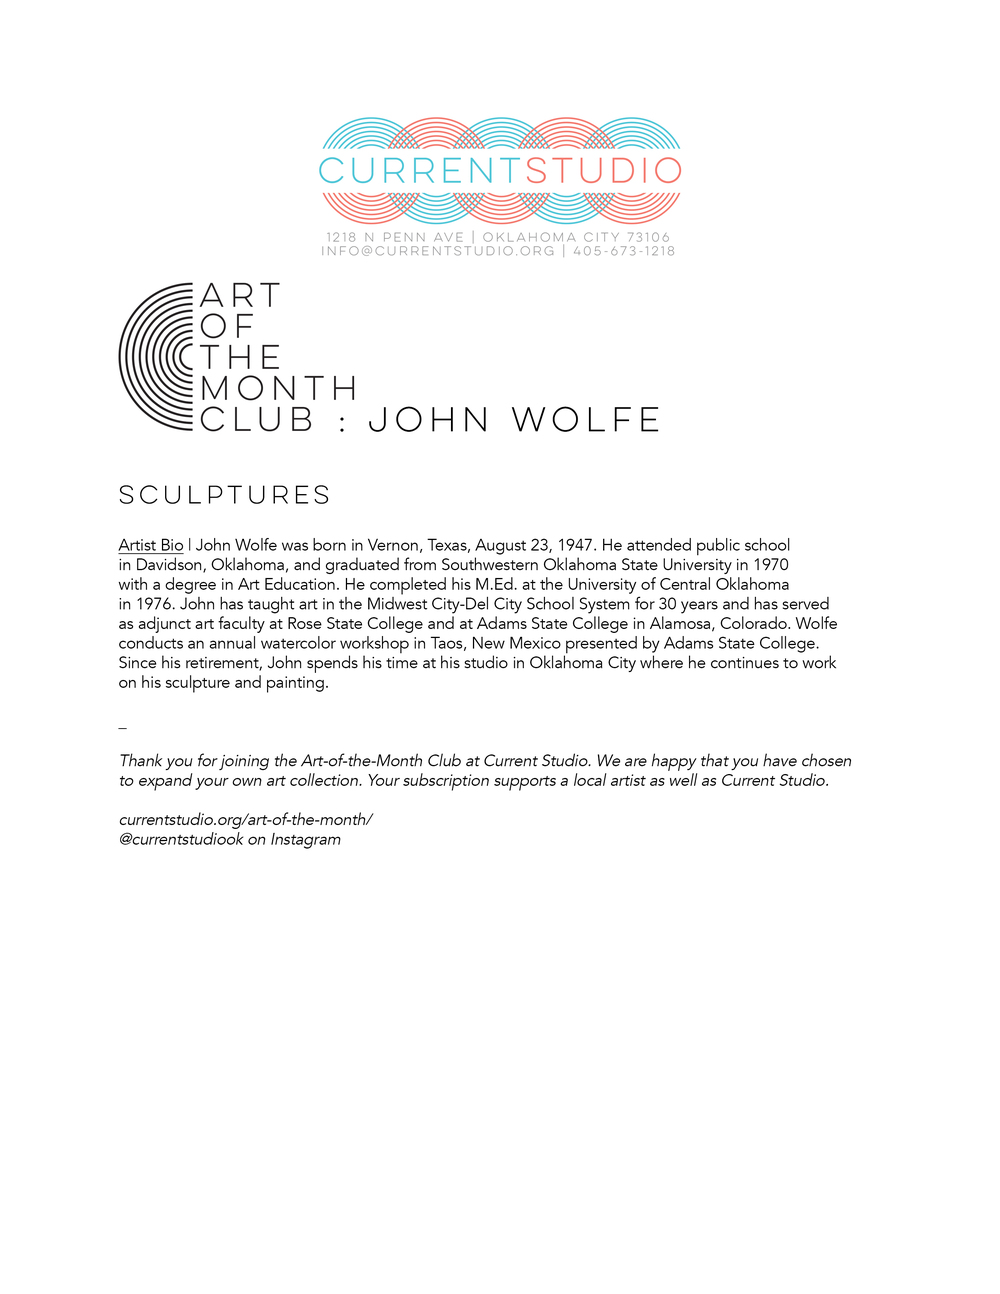 art of the month artist sheet - john wolfe.jpg